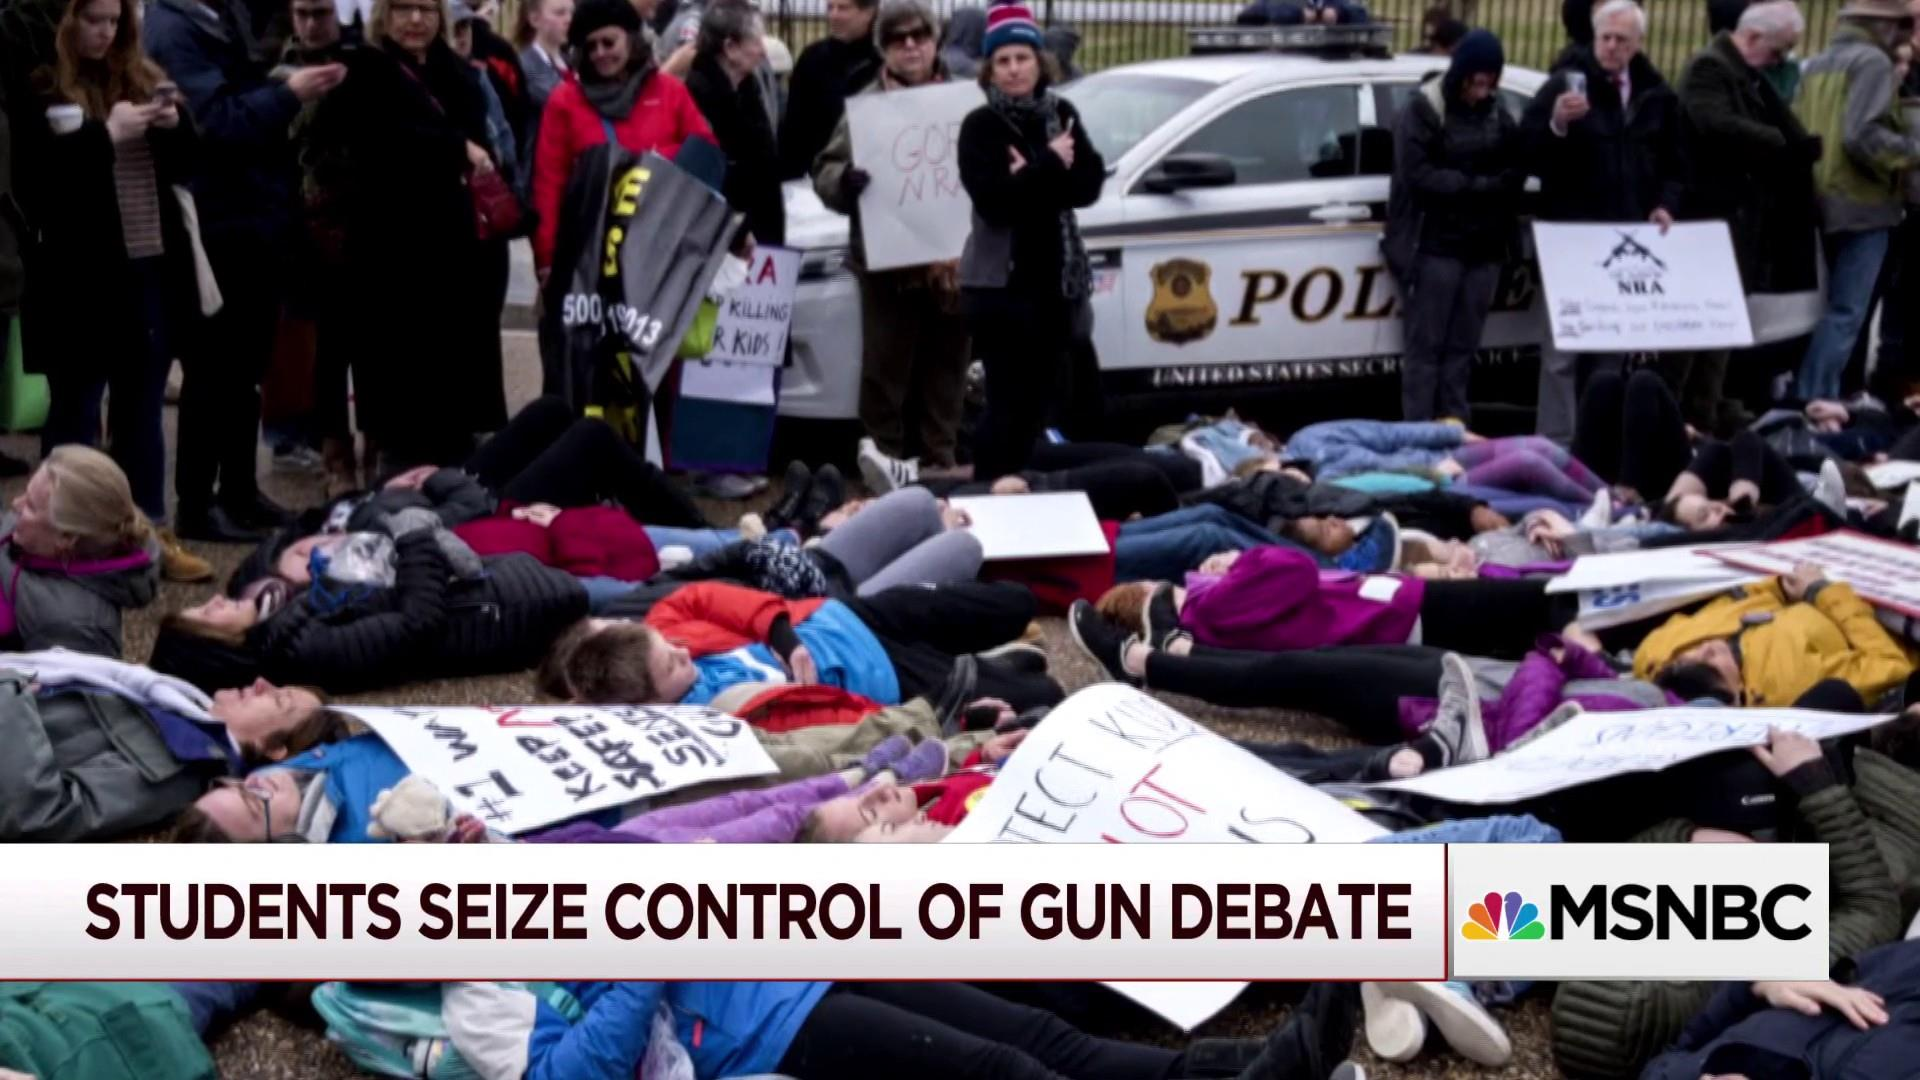 gun debate There are problems with the fetishization of youth in politics.